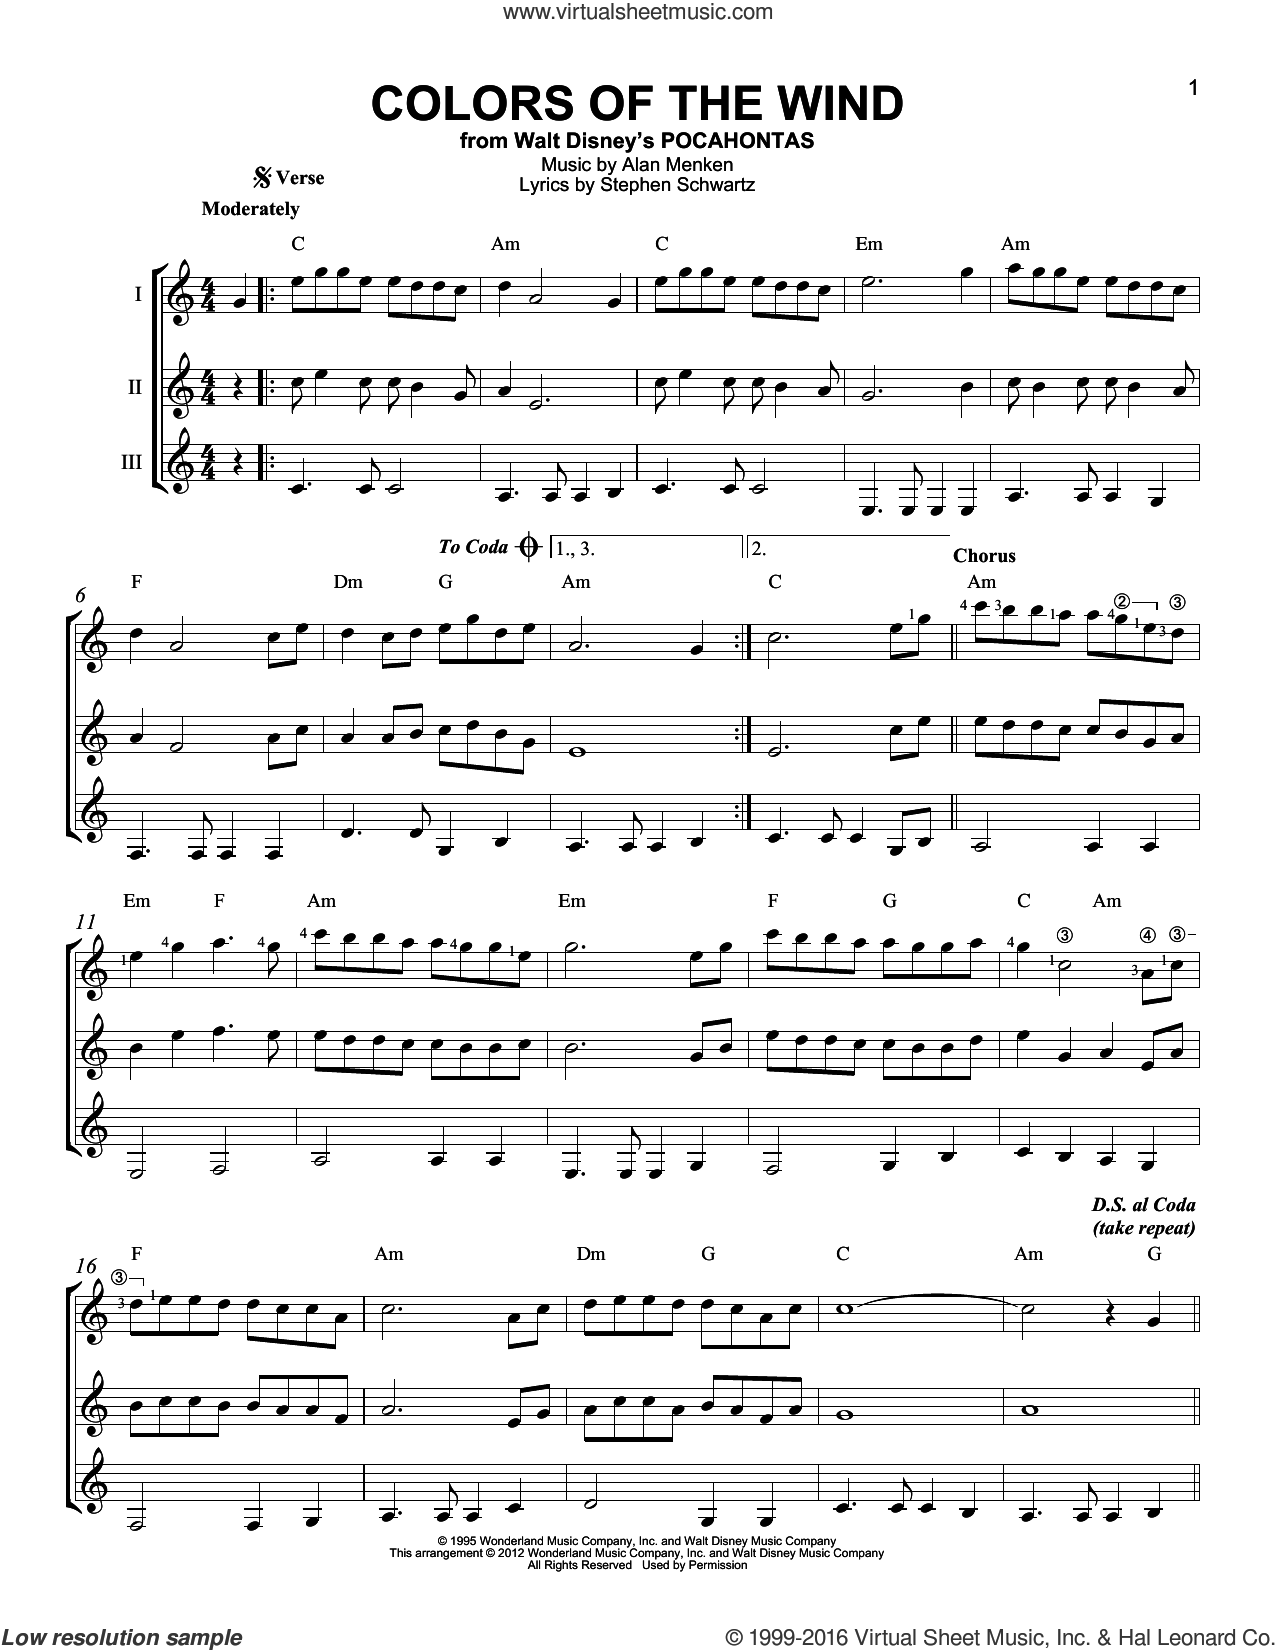 Colors Of The Wind sheet music for guitar ensemble by Stephen Schwartz